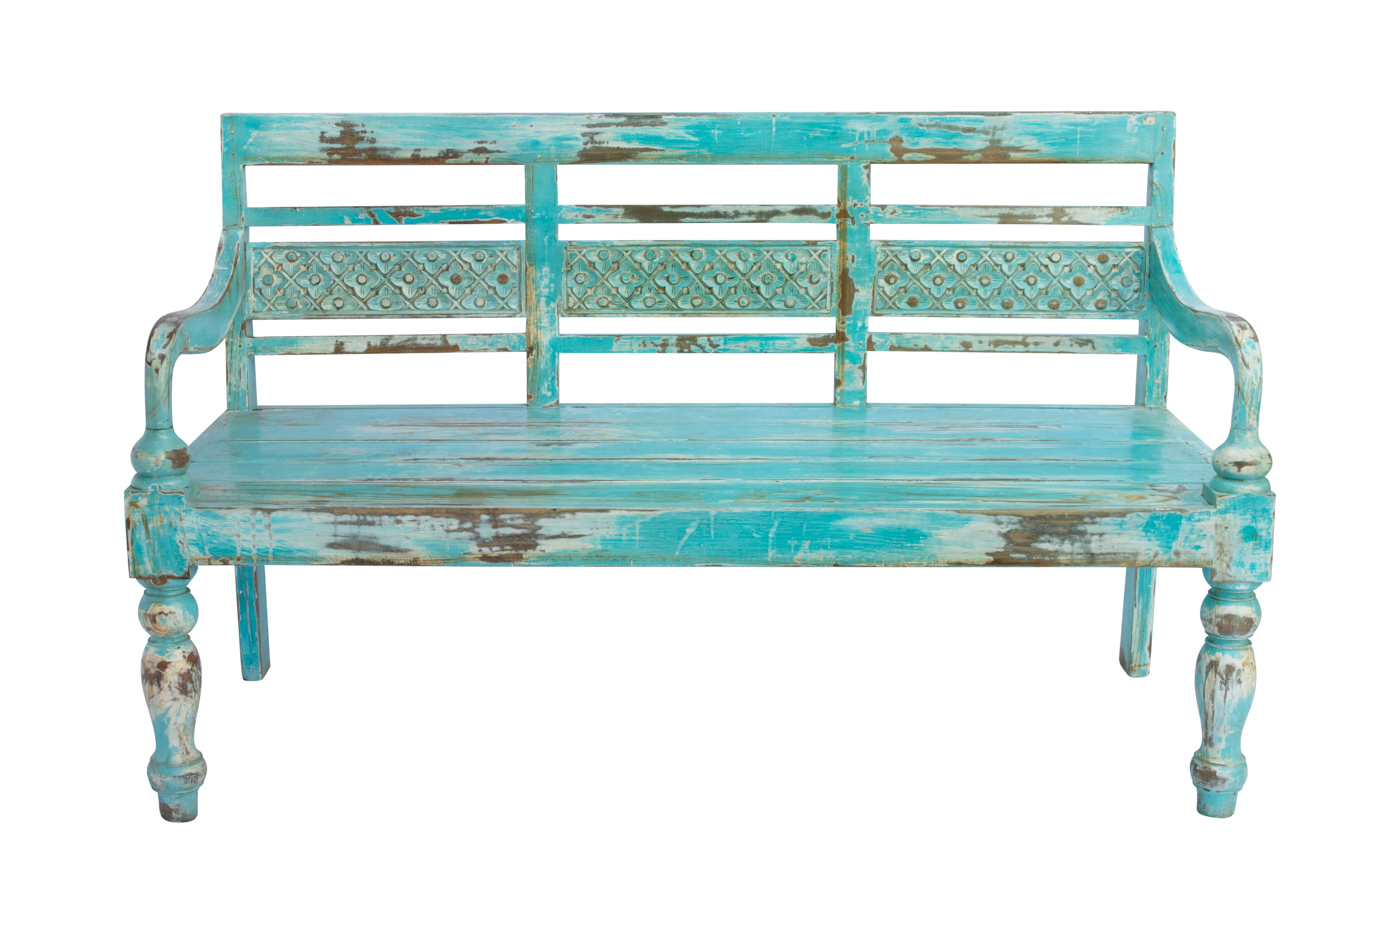 Balinese carved bench mint green, 147 Cm